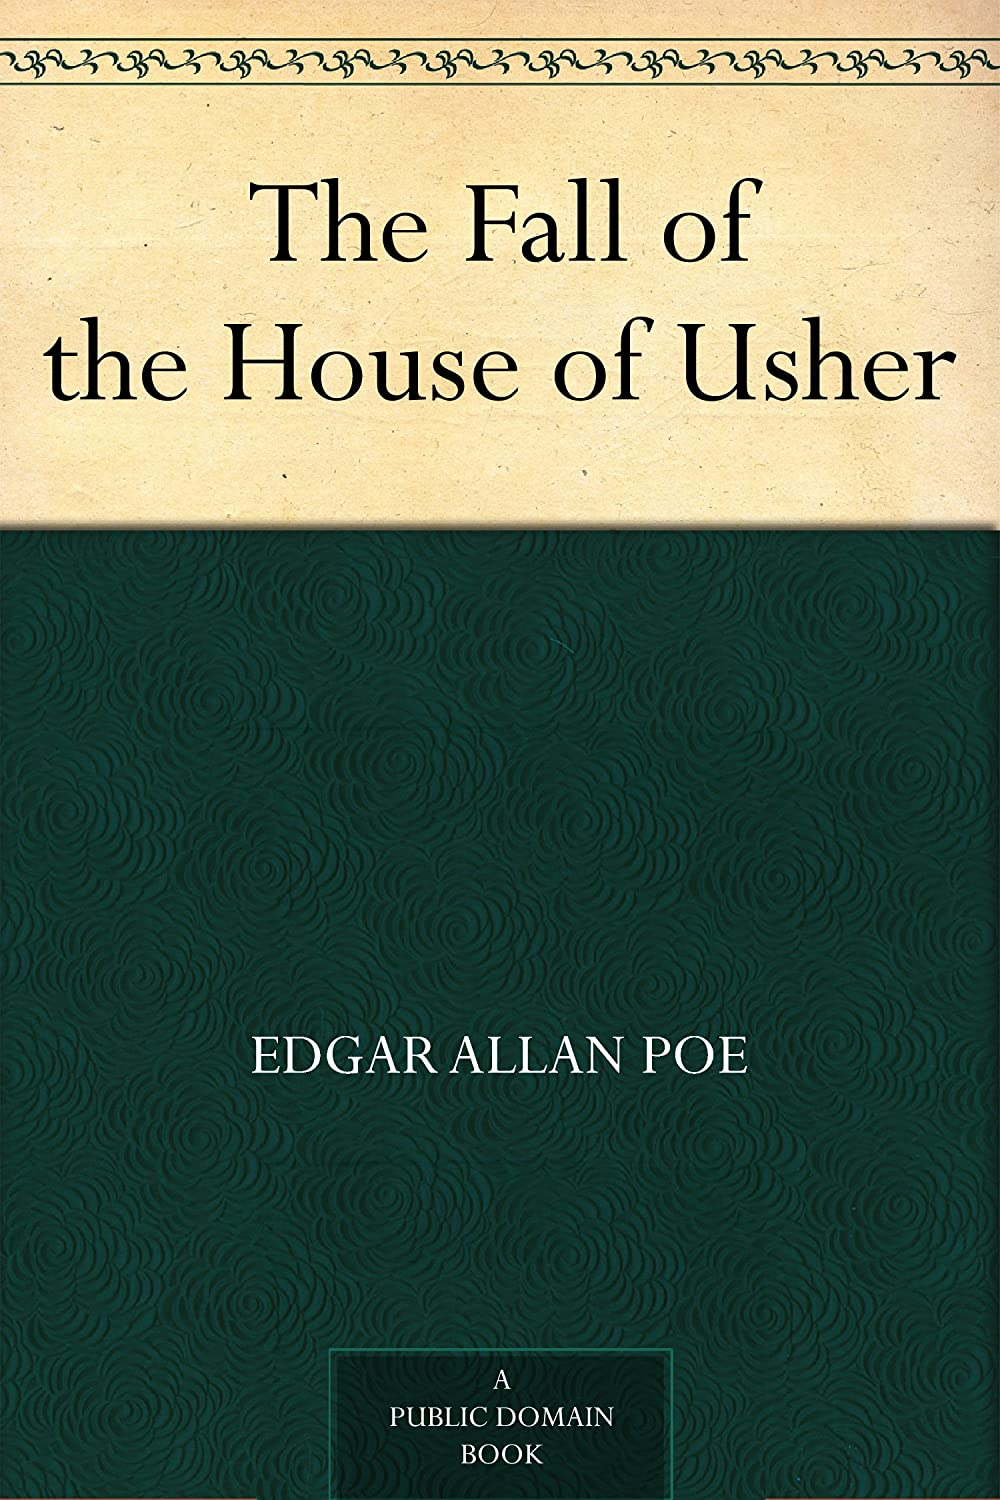 gothic setting and characters edgar allan poe s fall house Free essay: edgar allen poe's use of gothic setting in the fall of the house of usher the fall of the house of usher by edgar allan poe has a.